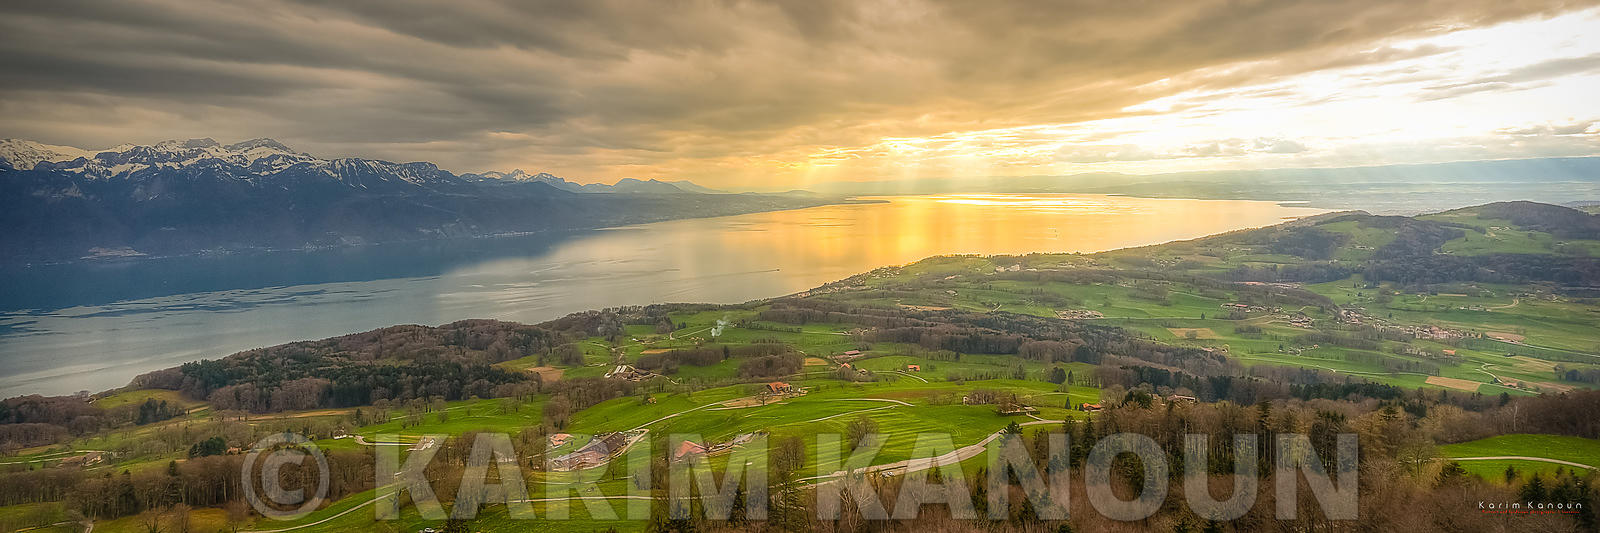 Dramtic sky with a golden hole in the clouds. View of the center part of Lake Geneva from Mont Pèlerin